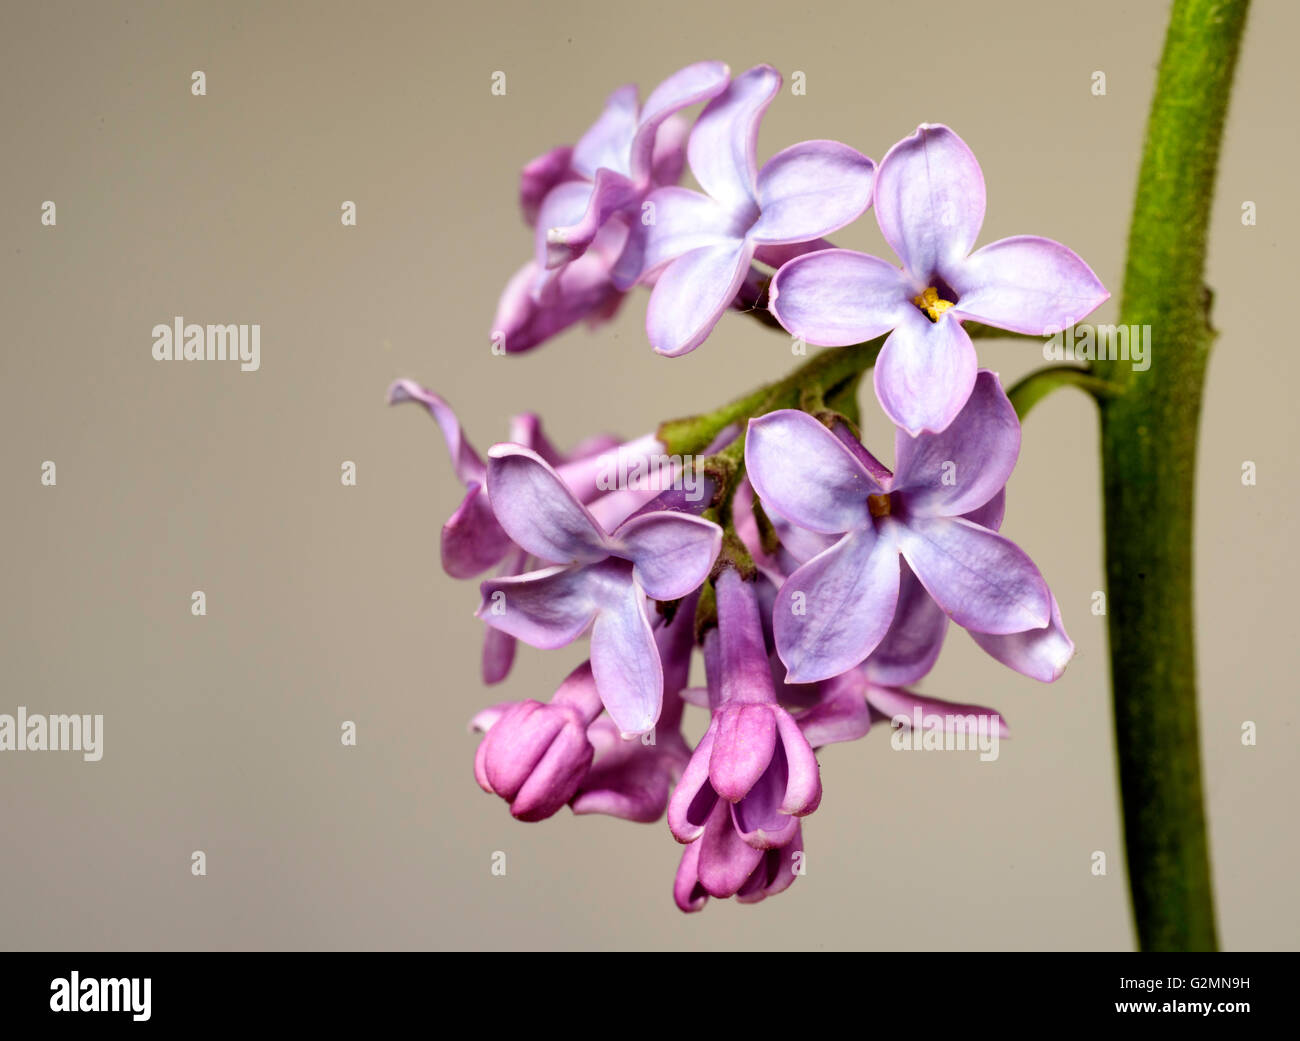 Lilac flower in full blossom set against a grey toned gardening background. - Stock Image